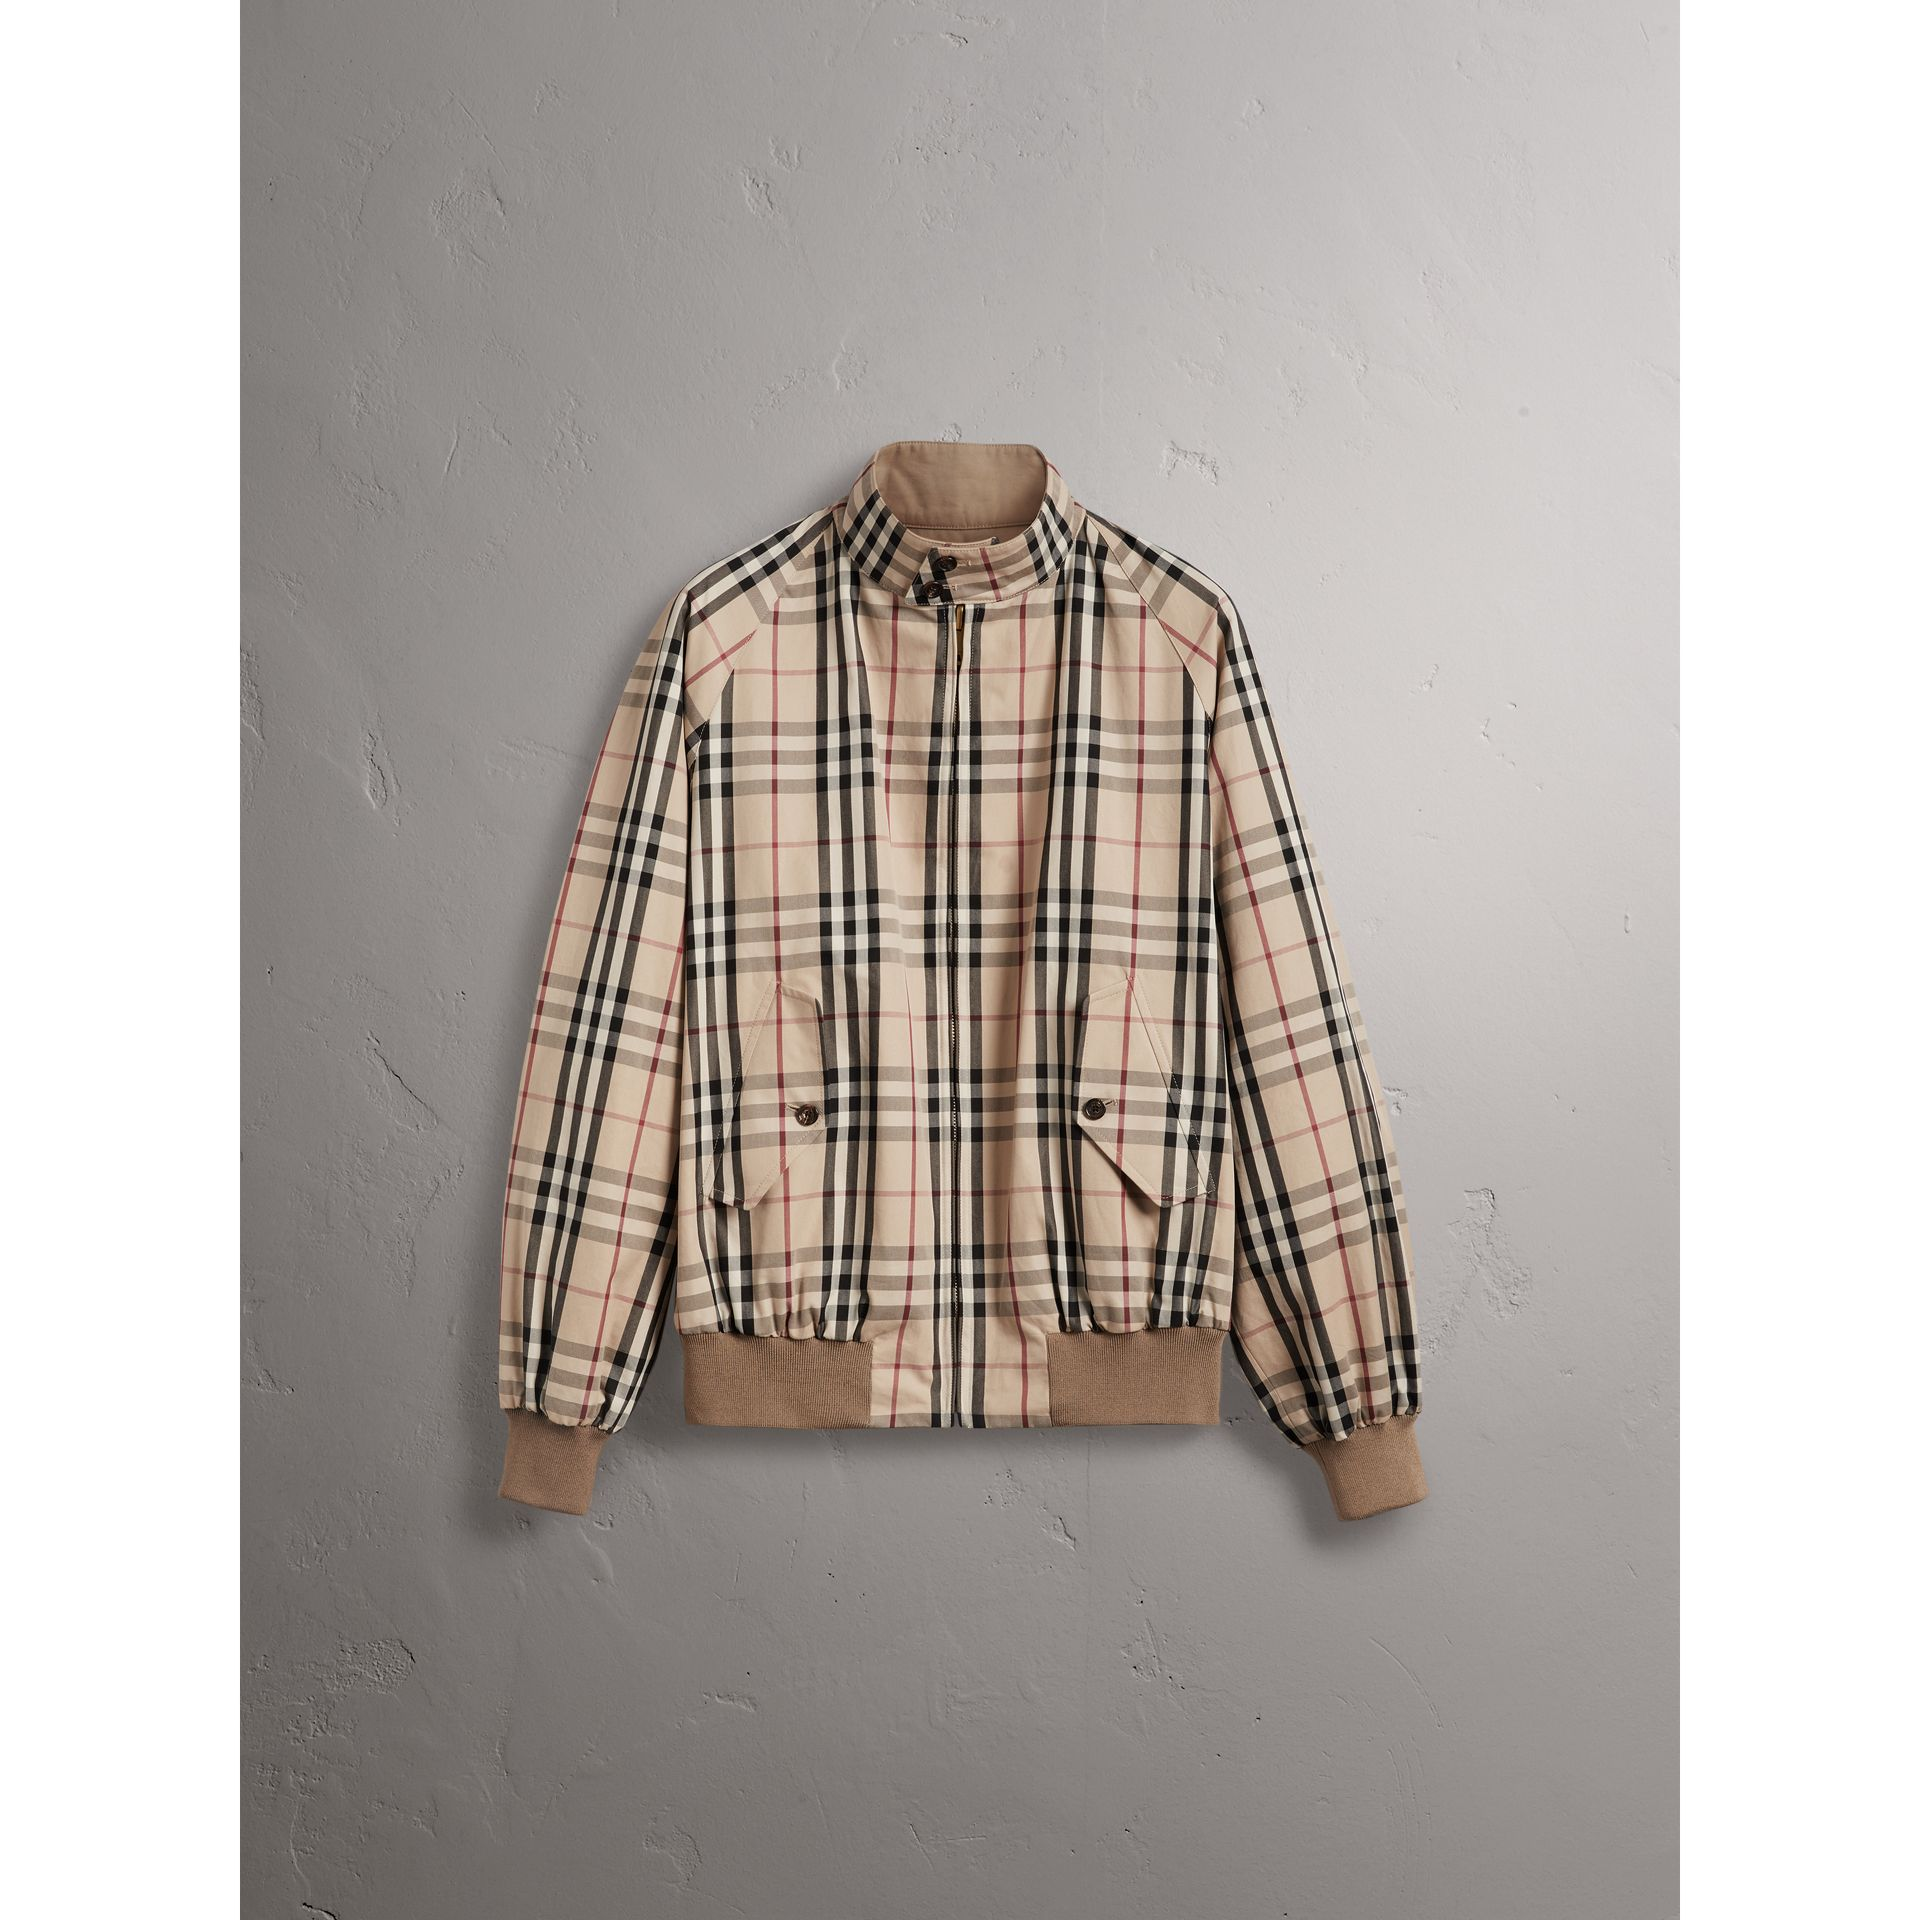 Gosha x Burberry Reversible Harrington Jacket in Honey | Burberry - gallery image 8